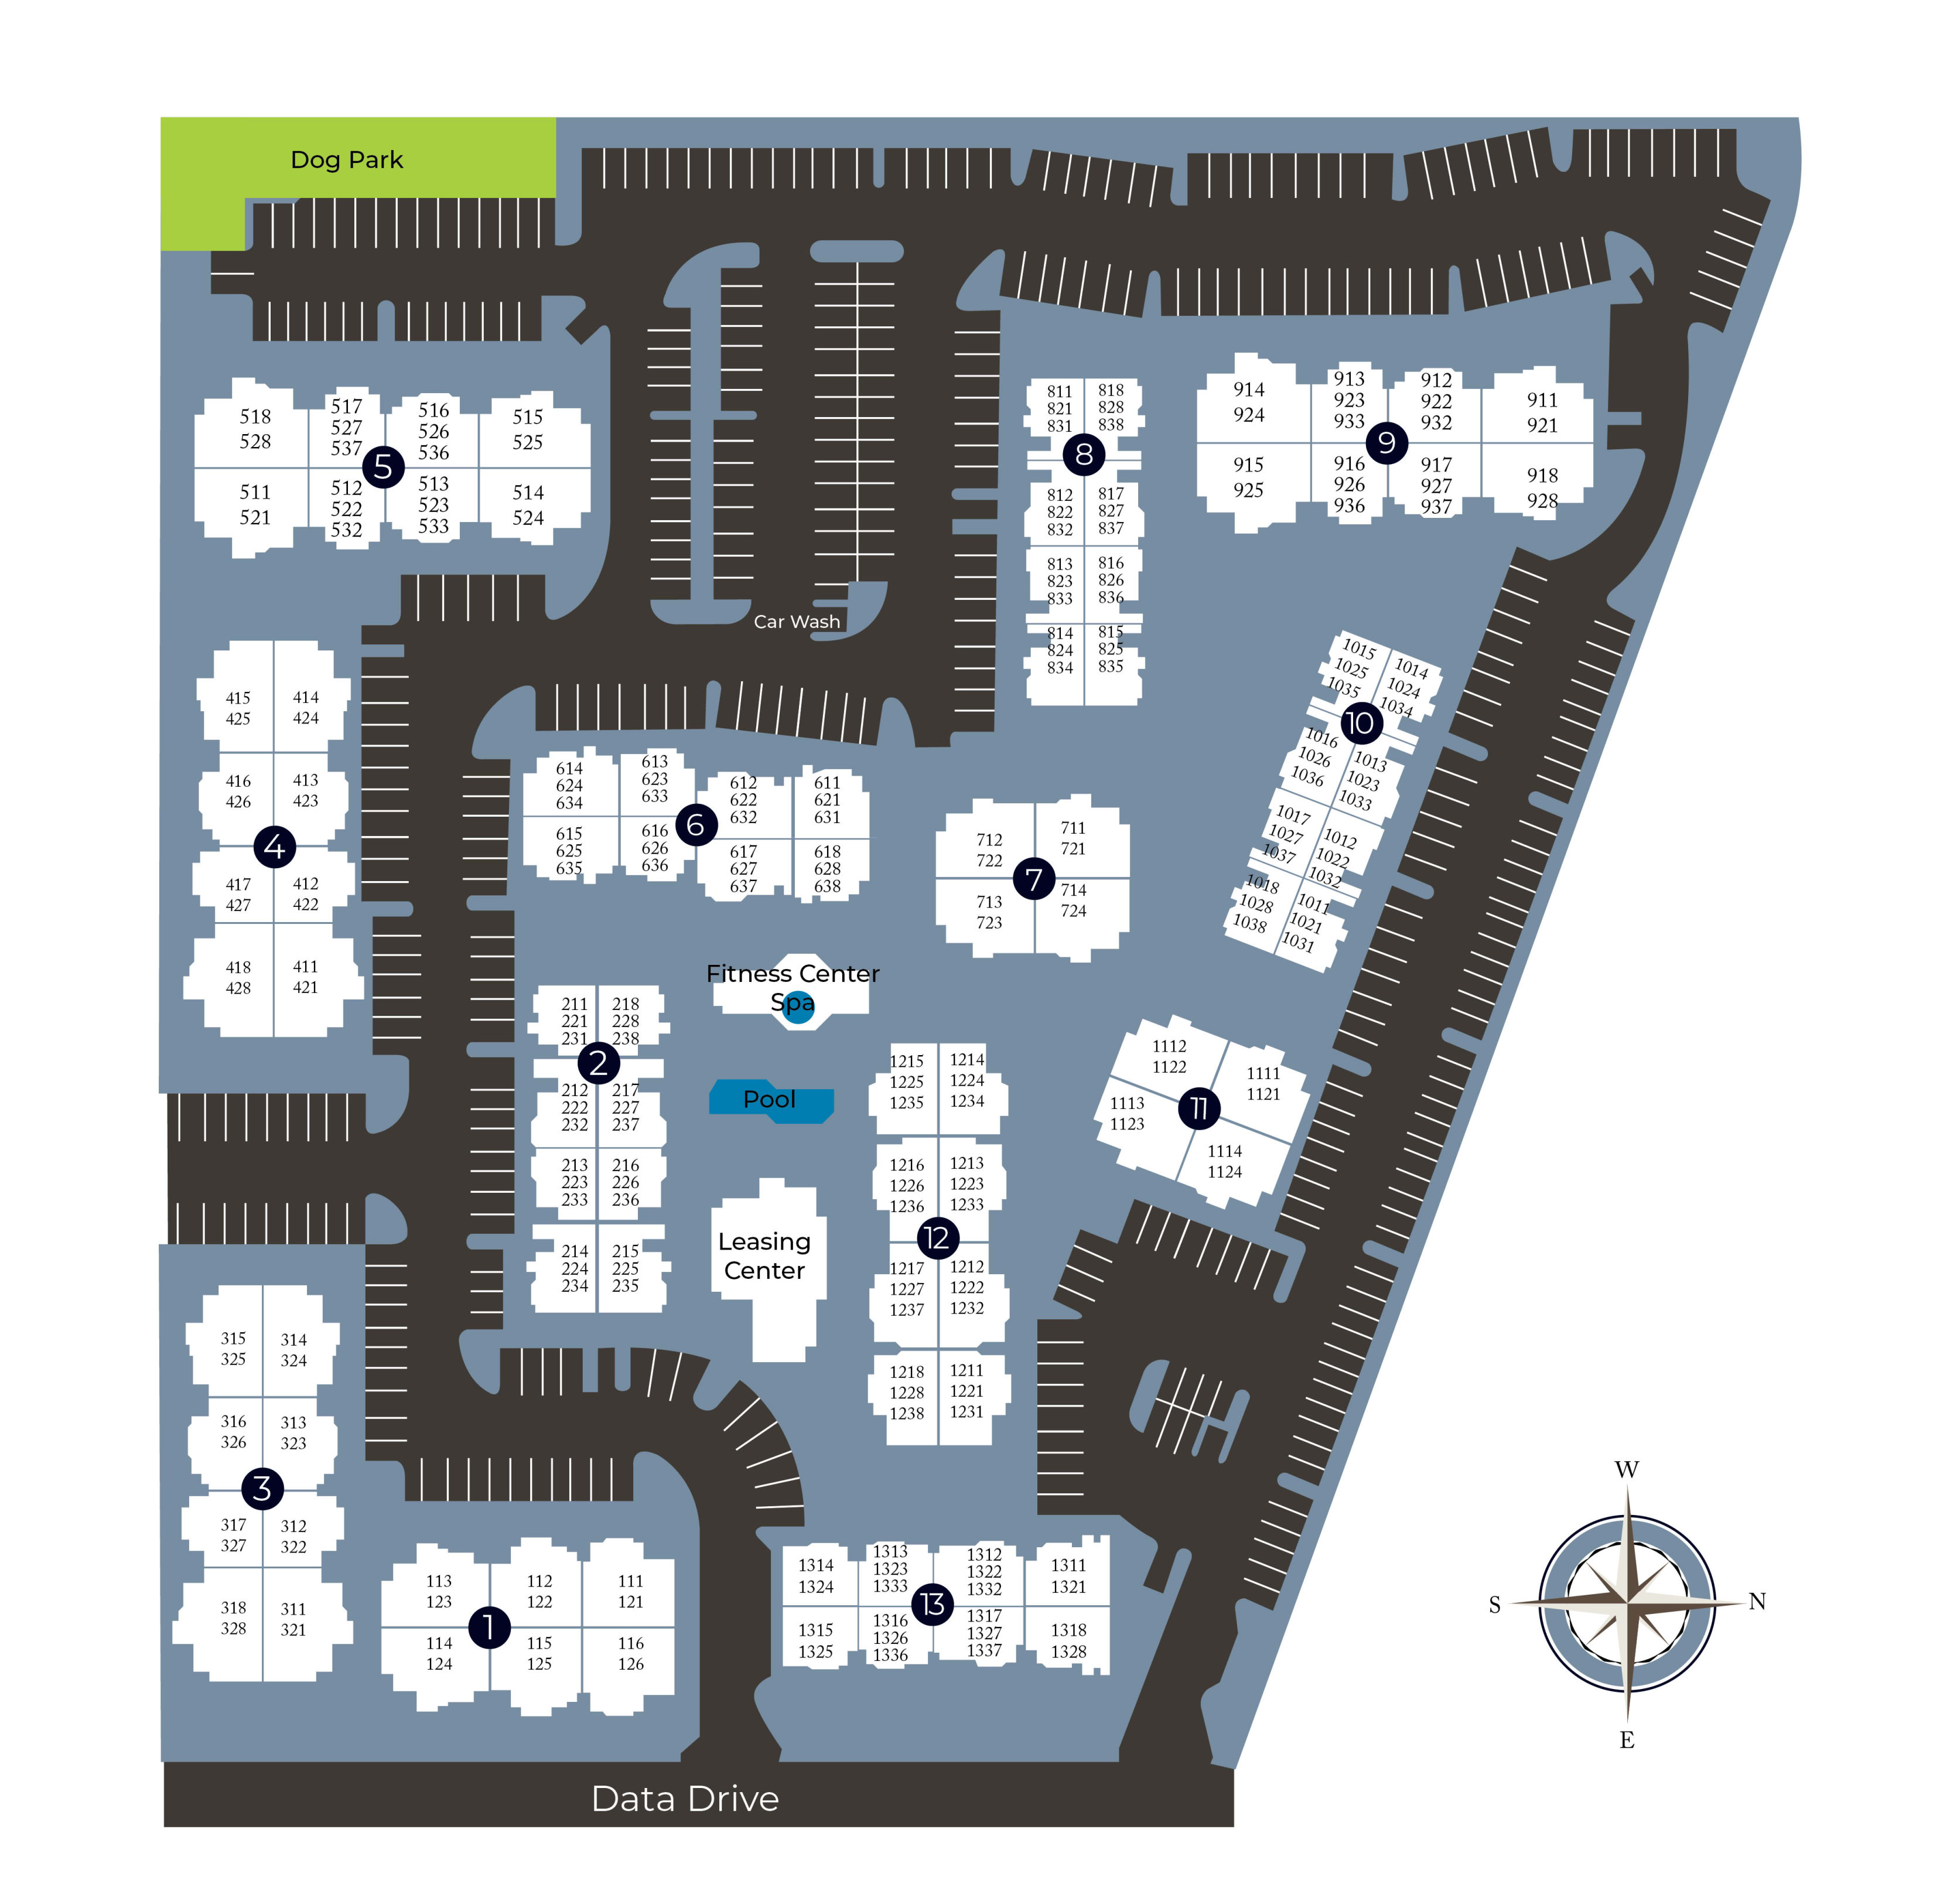 Community site map for The Reserve at Capital Center Apartment Homes in Rancho Cordova, California